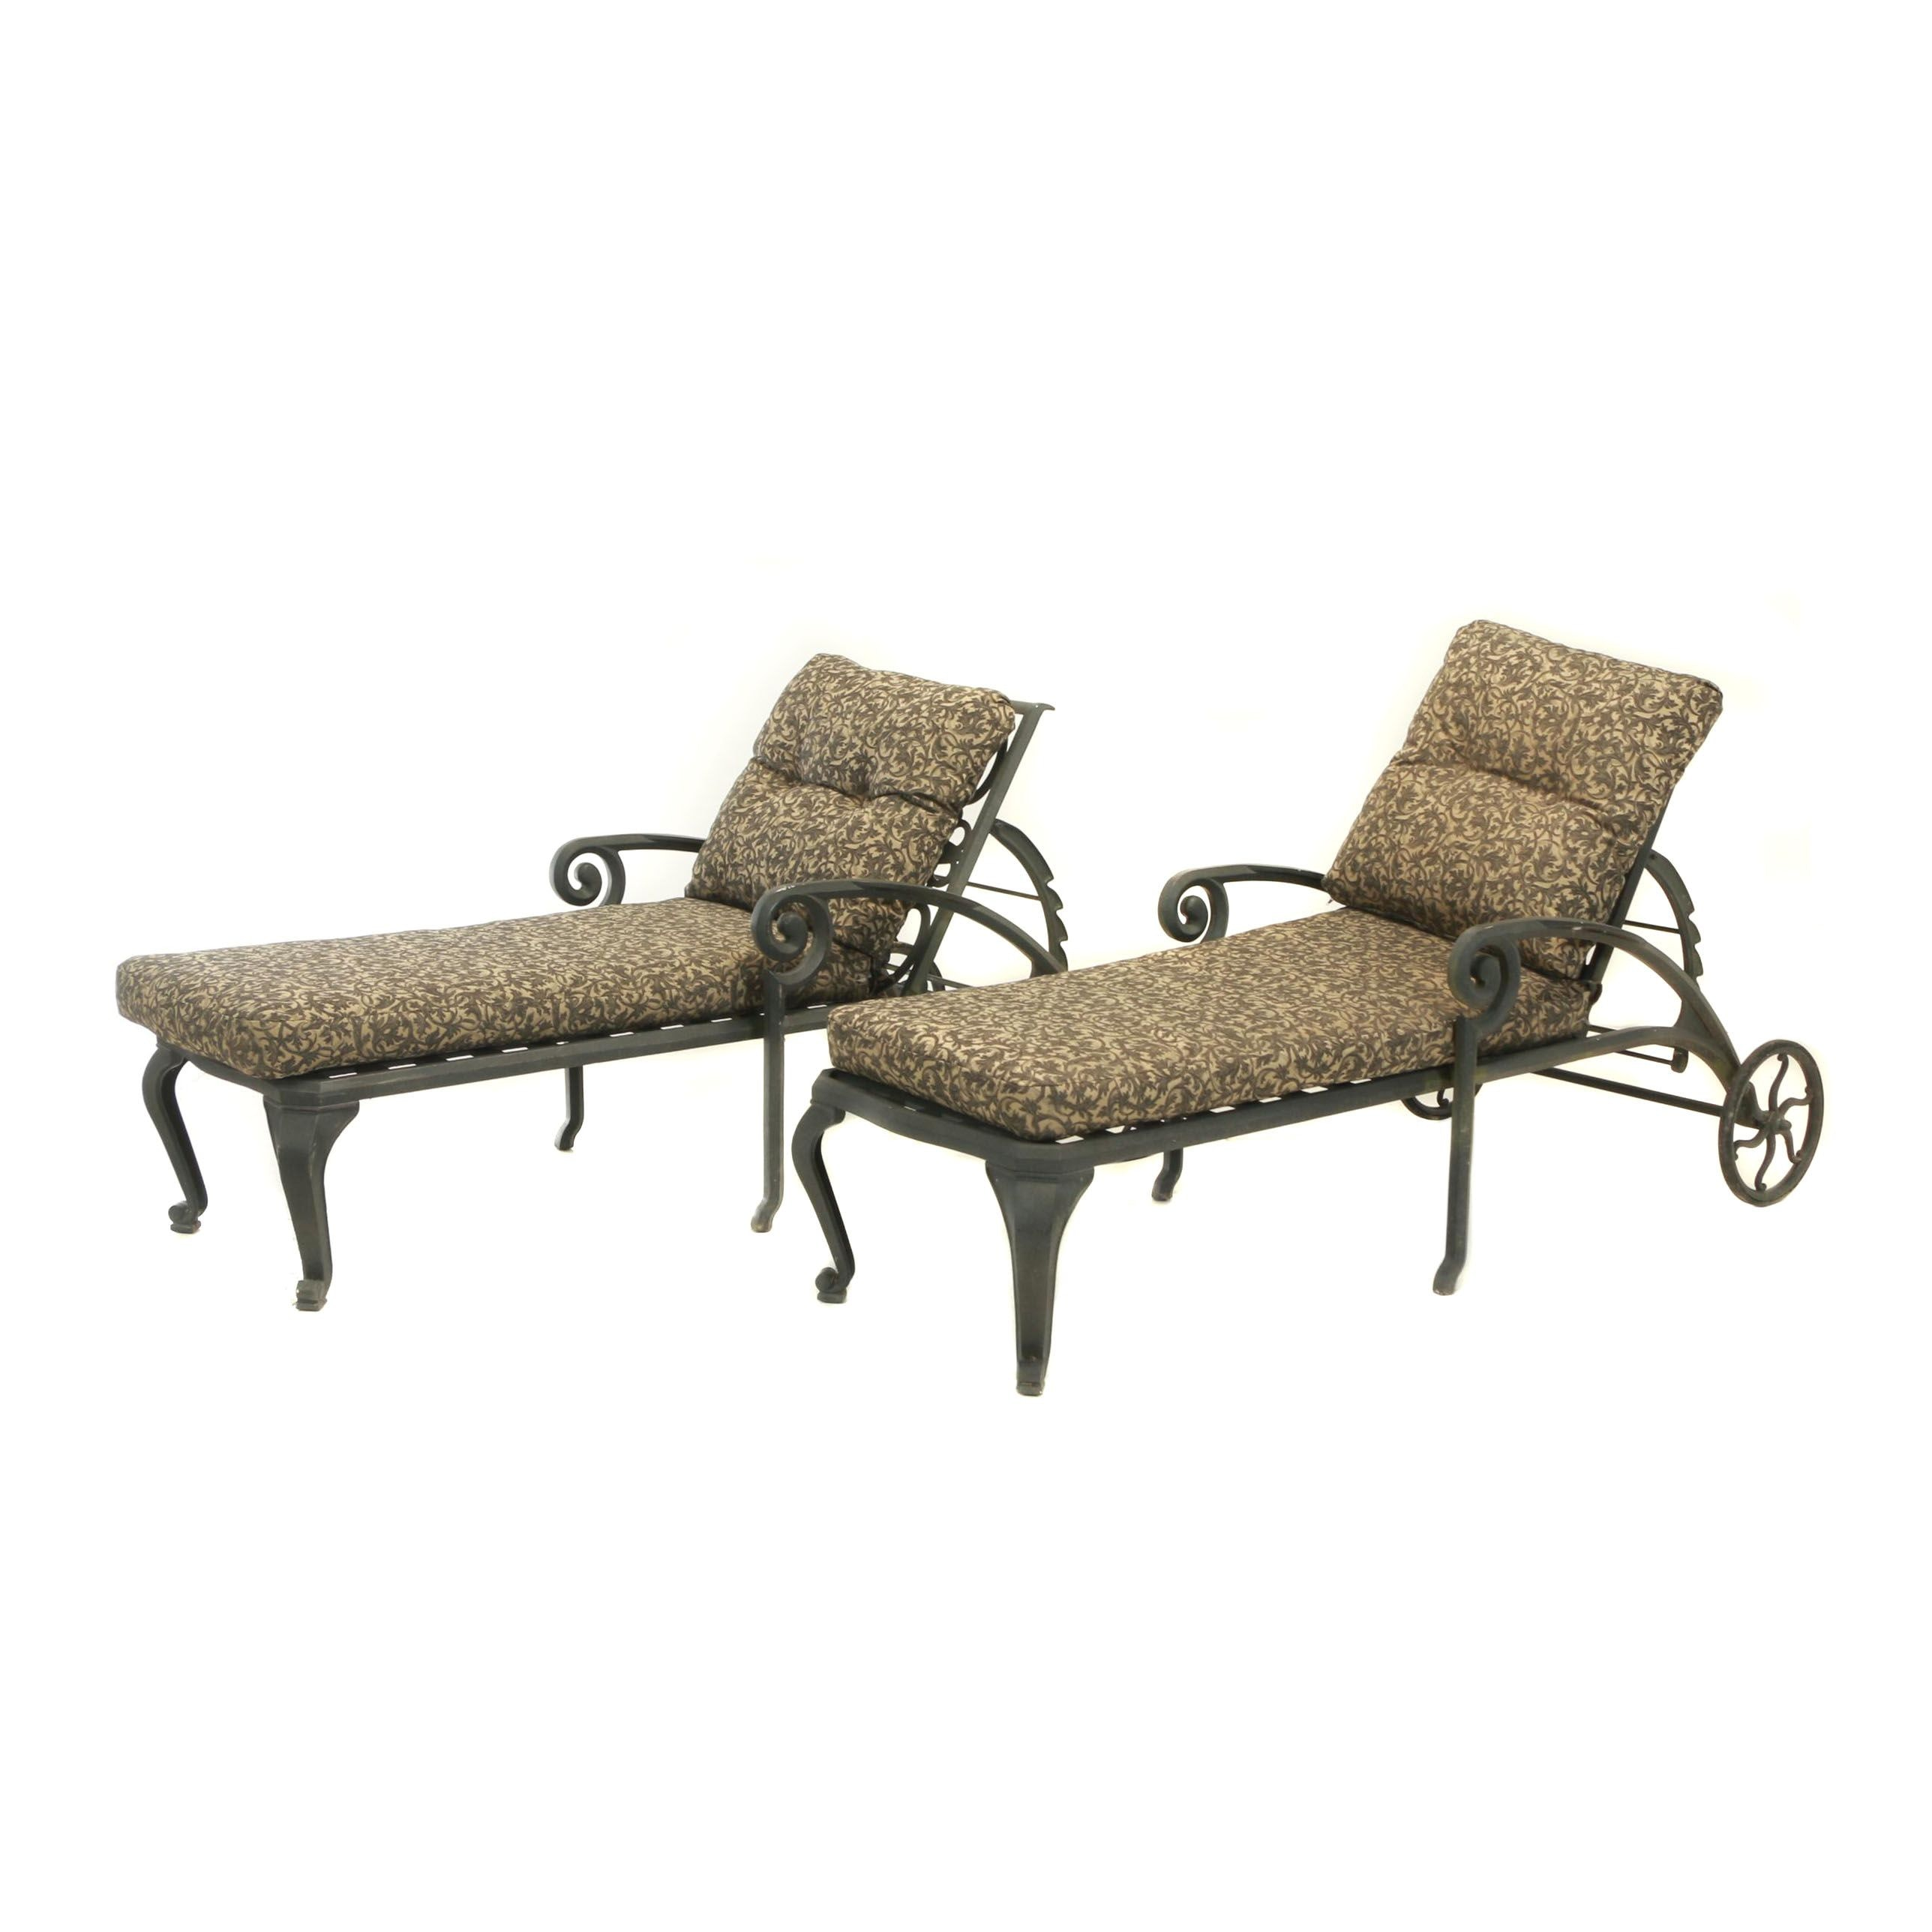 Pair of Contemporary Cast-Aluminum Patio Chaise Lounges by Windham Castings